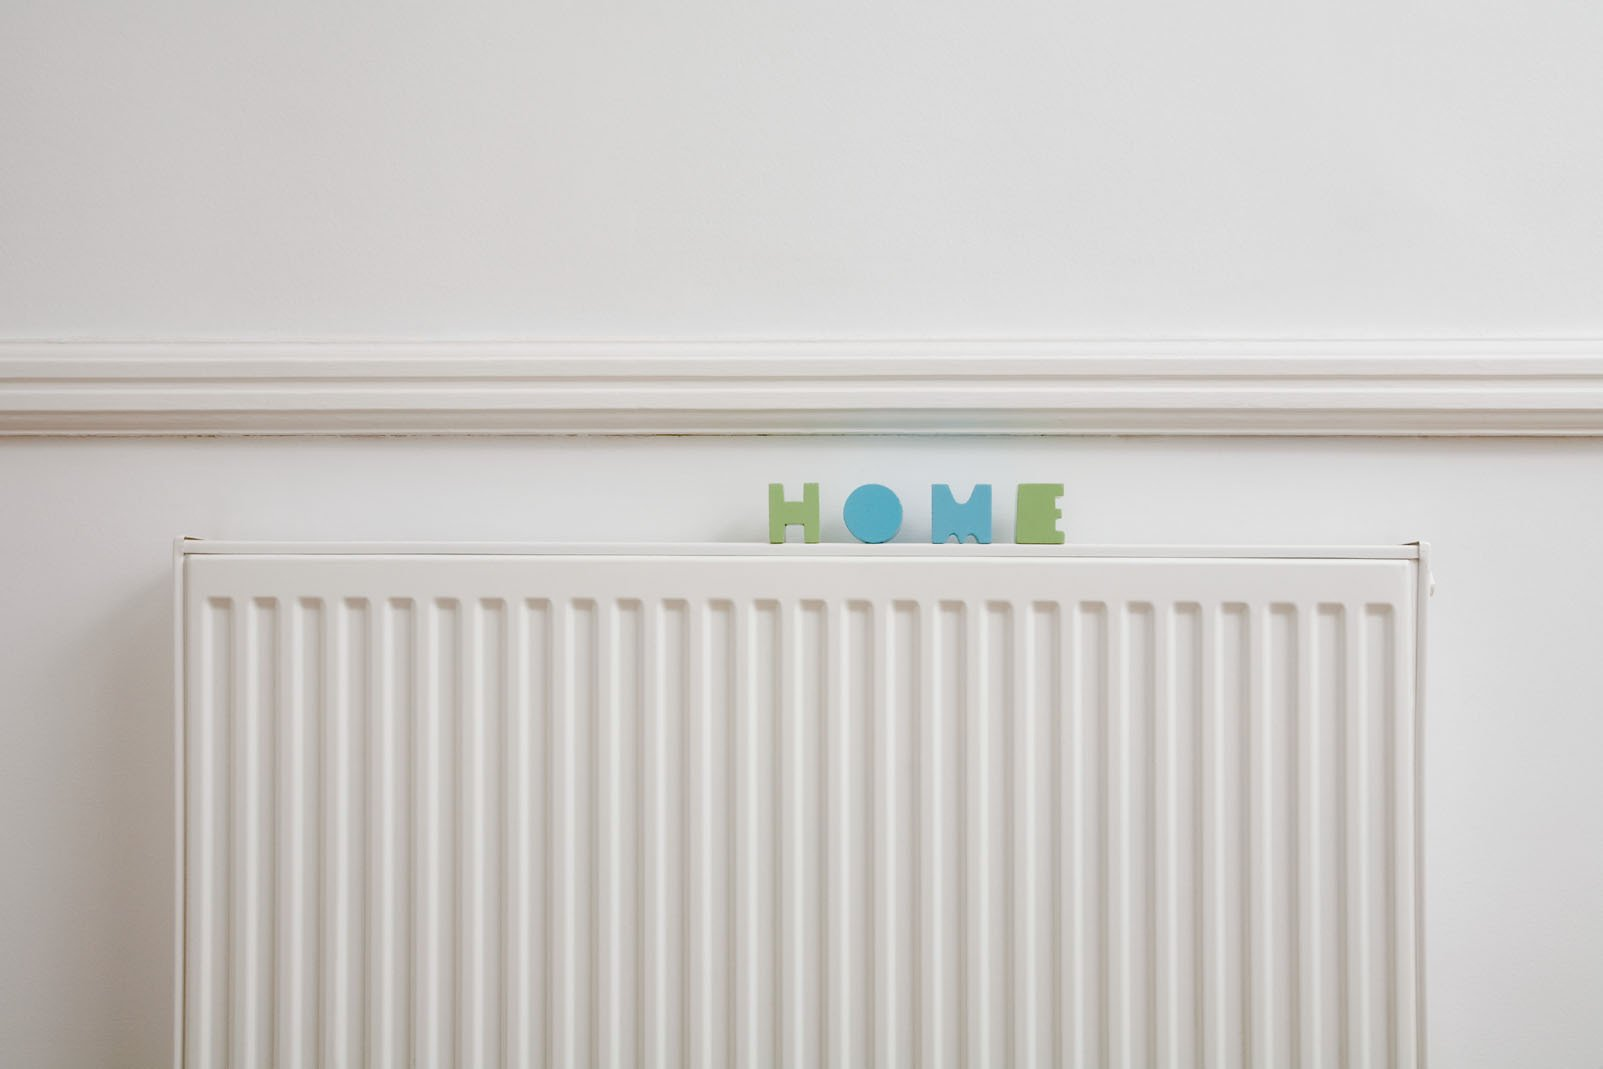 A radiator in a home